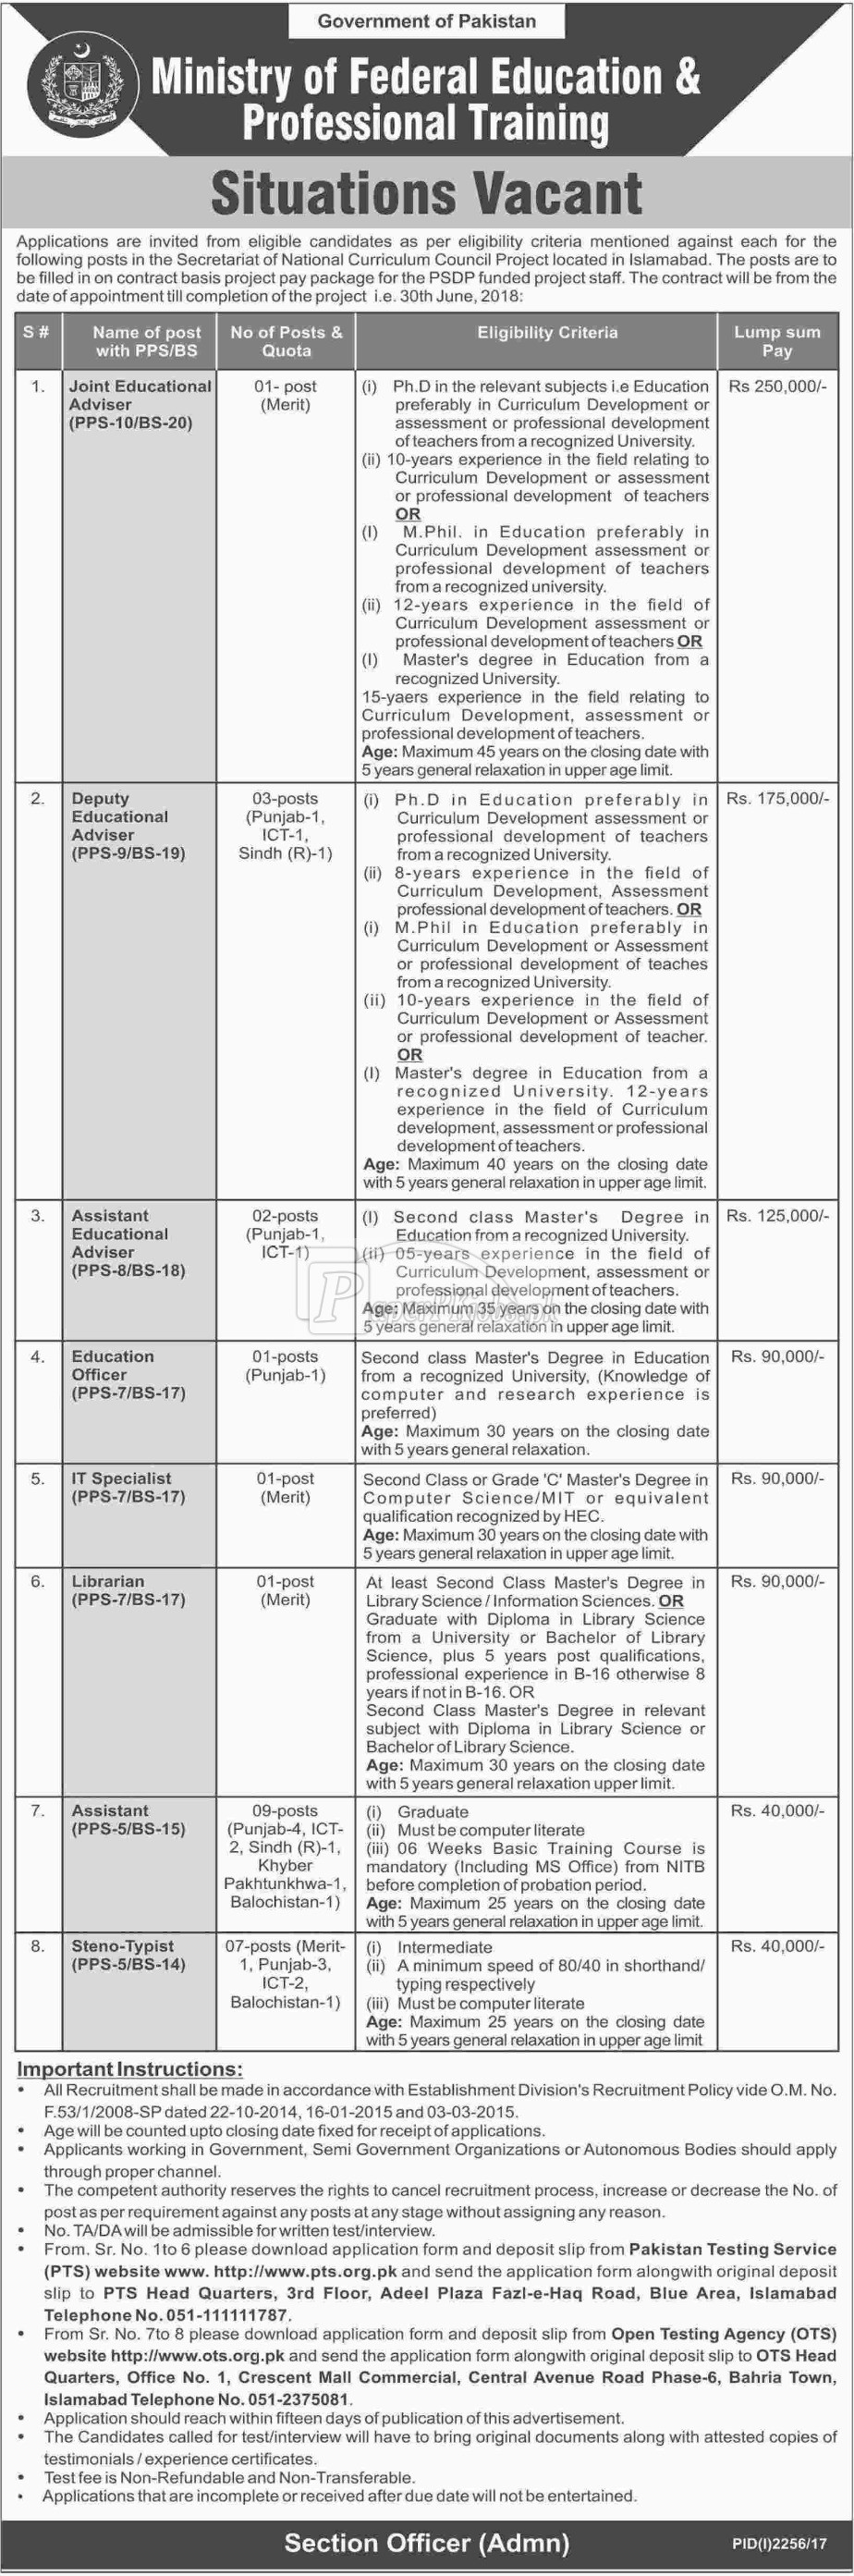 Ministry of Federal Education & Professional Training Islamabad OTS Jobs 2017